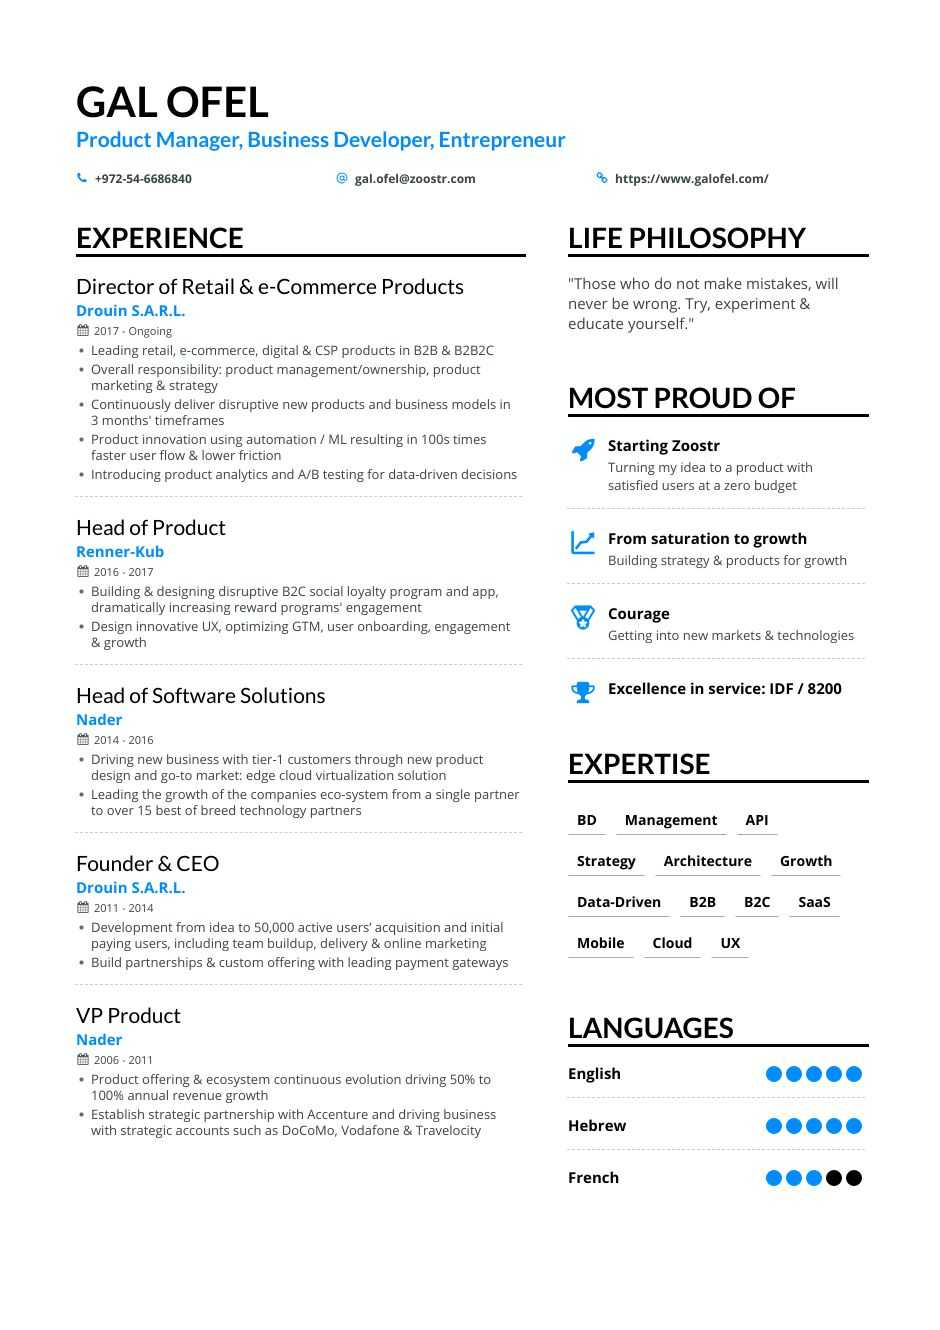 business development resume samples and writing guide for enhancv engineer good research Resume Business Development Engineer Resume